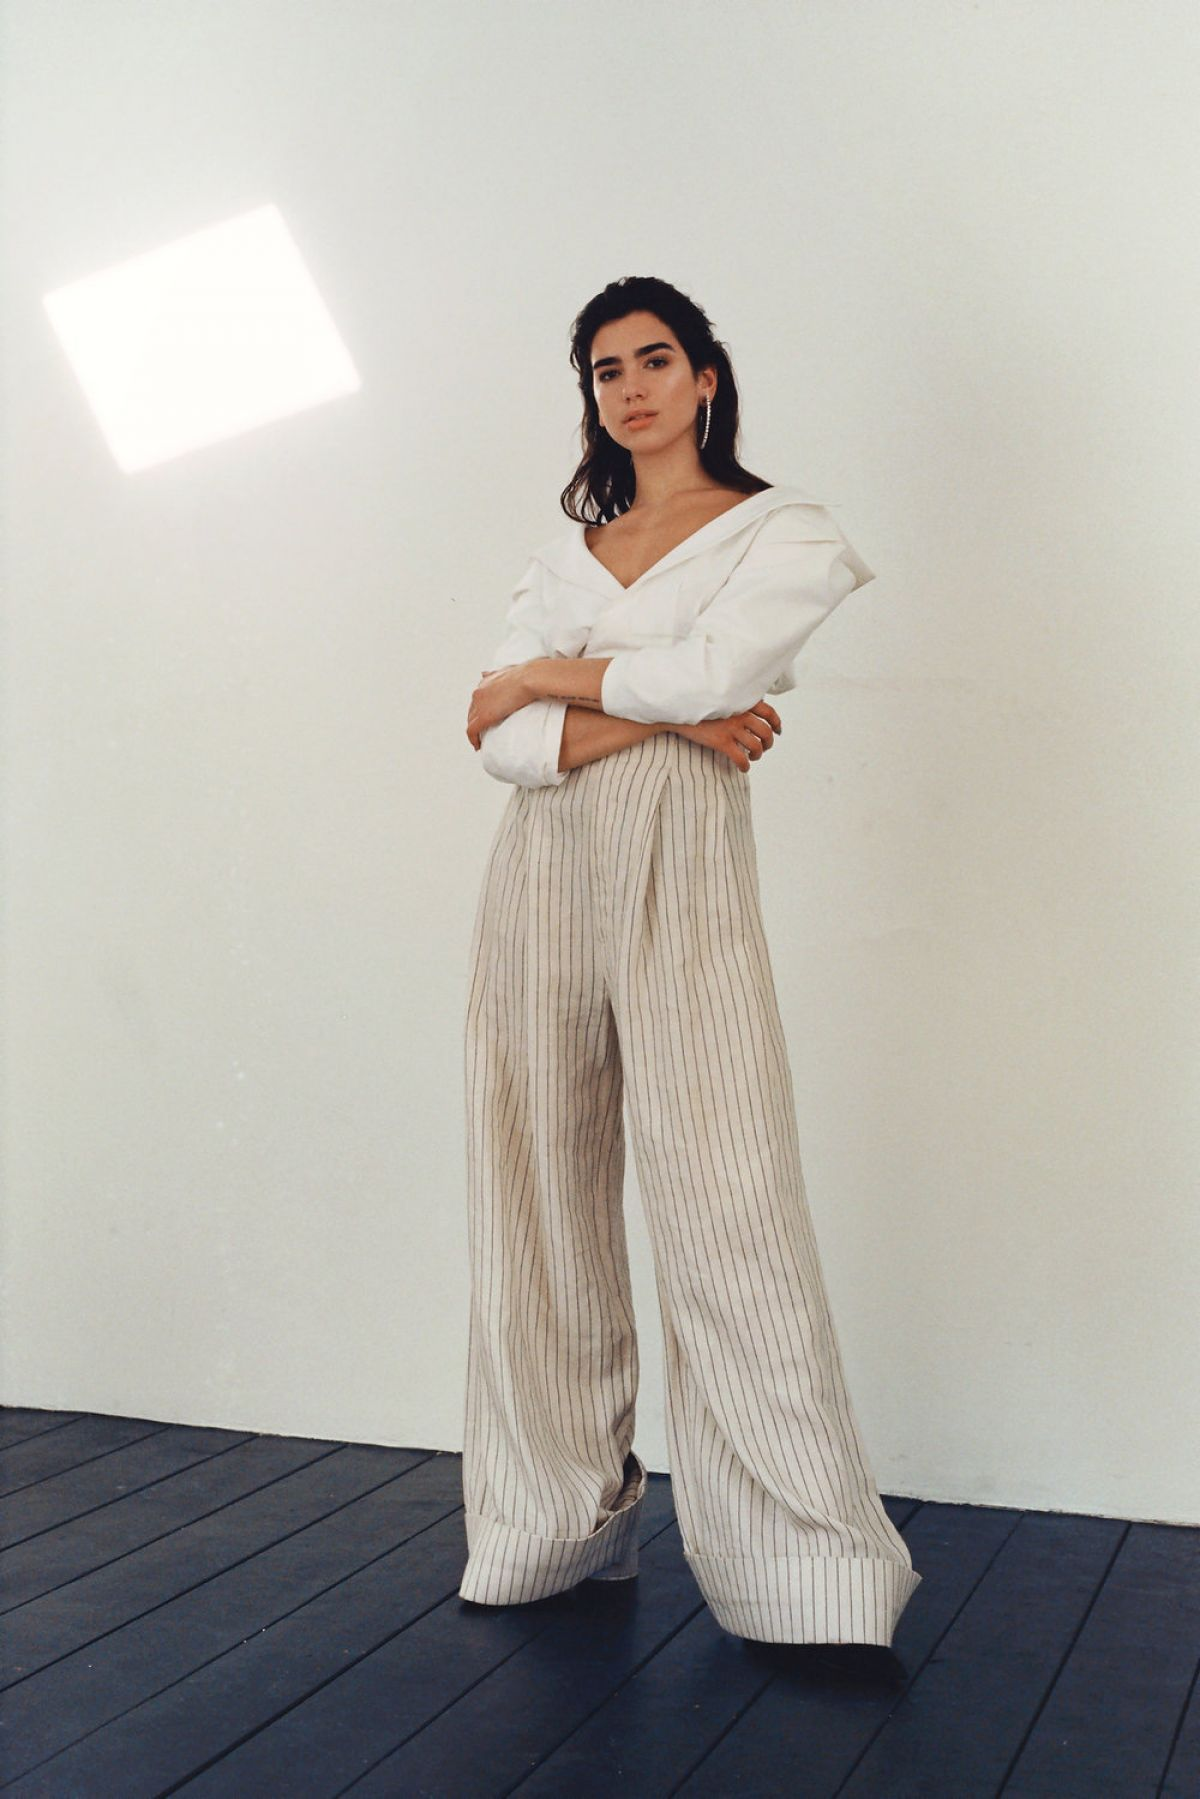 dua-lipa-for-modzik-magazine-2017_3.jpg